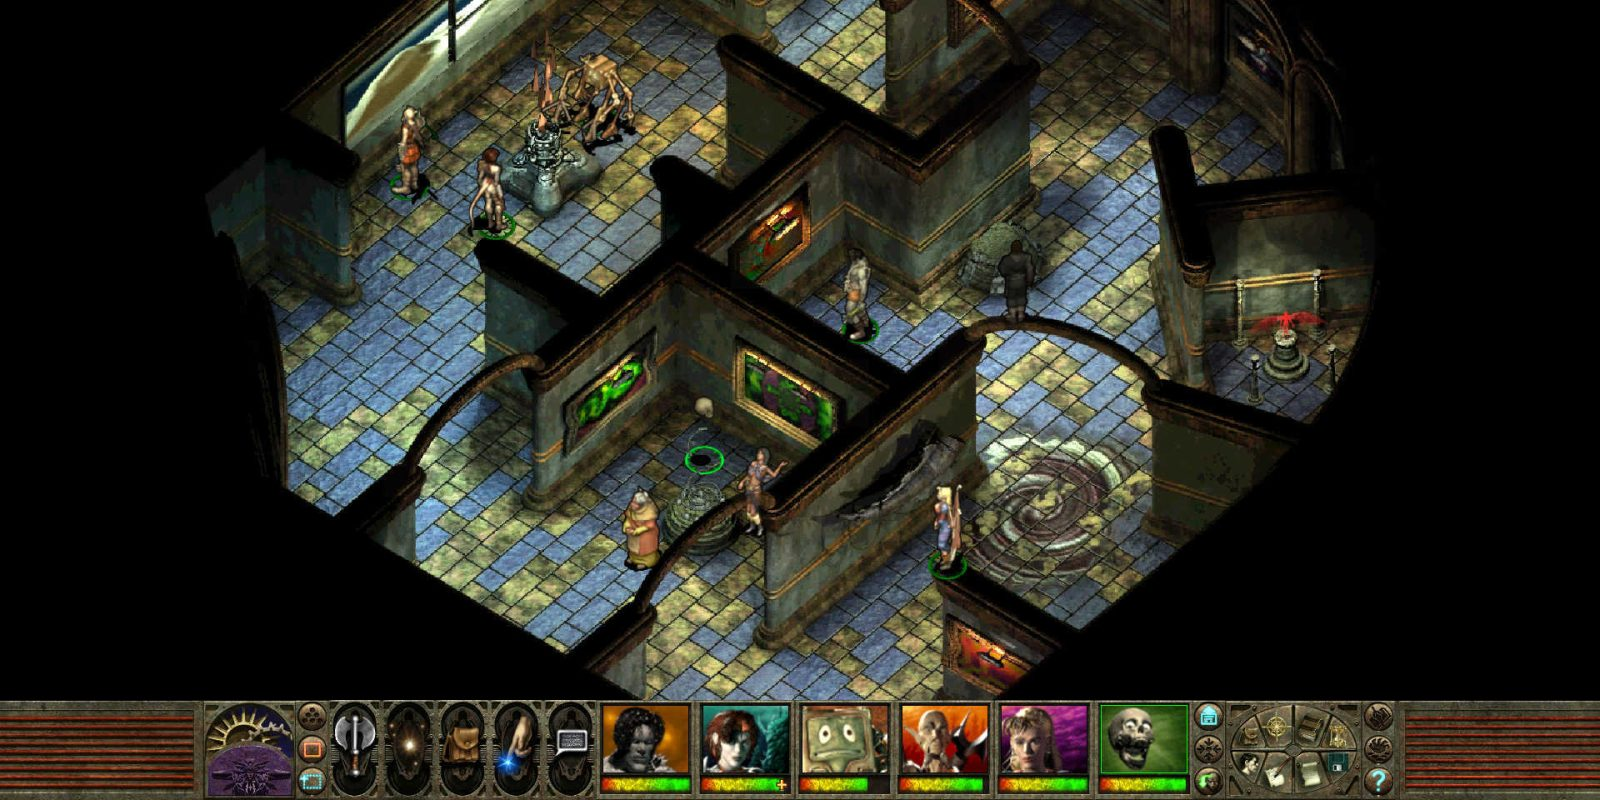 Planescape Torment has 50+ hours of tactical iOS gameplay, now $4